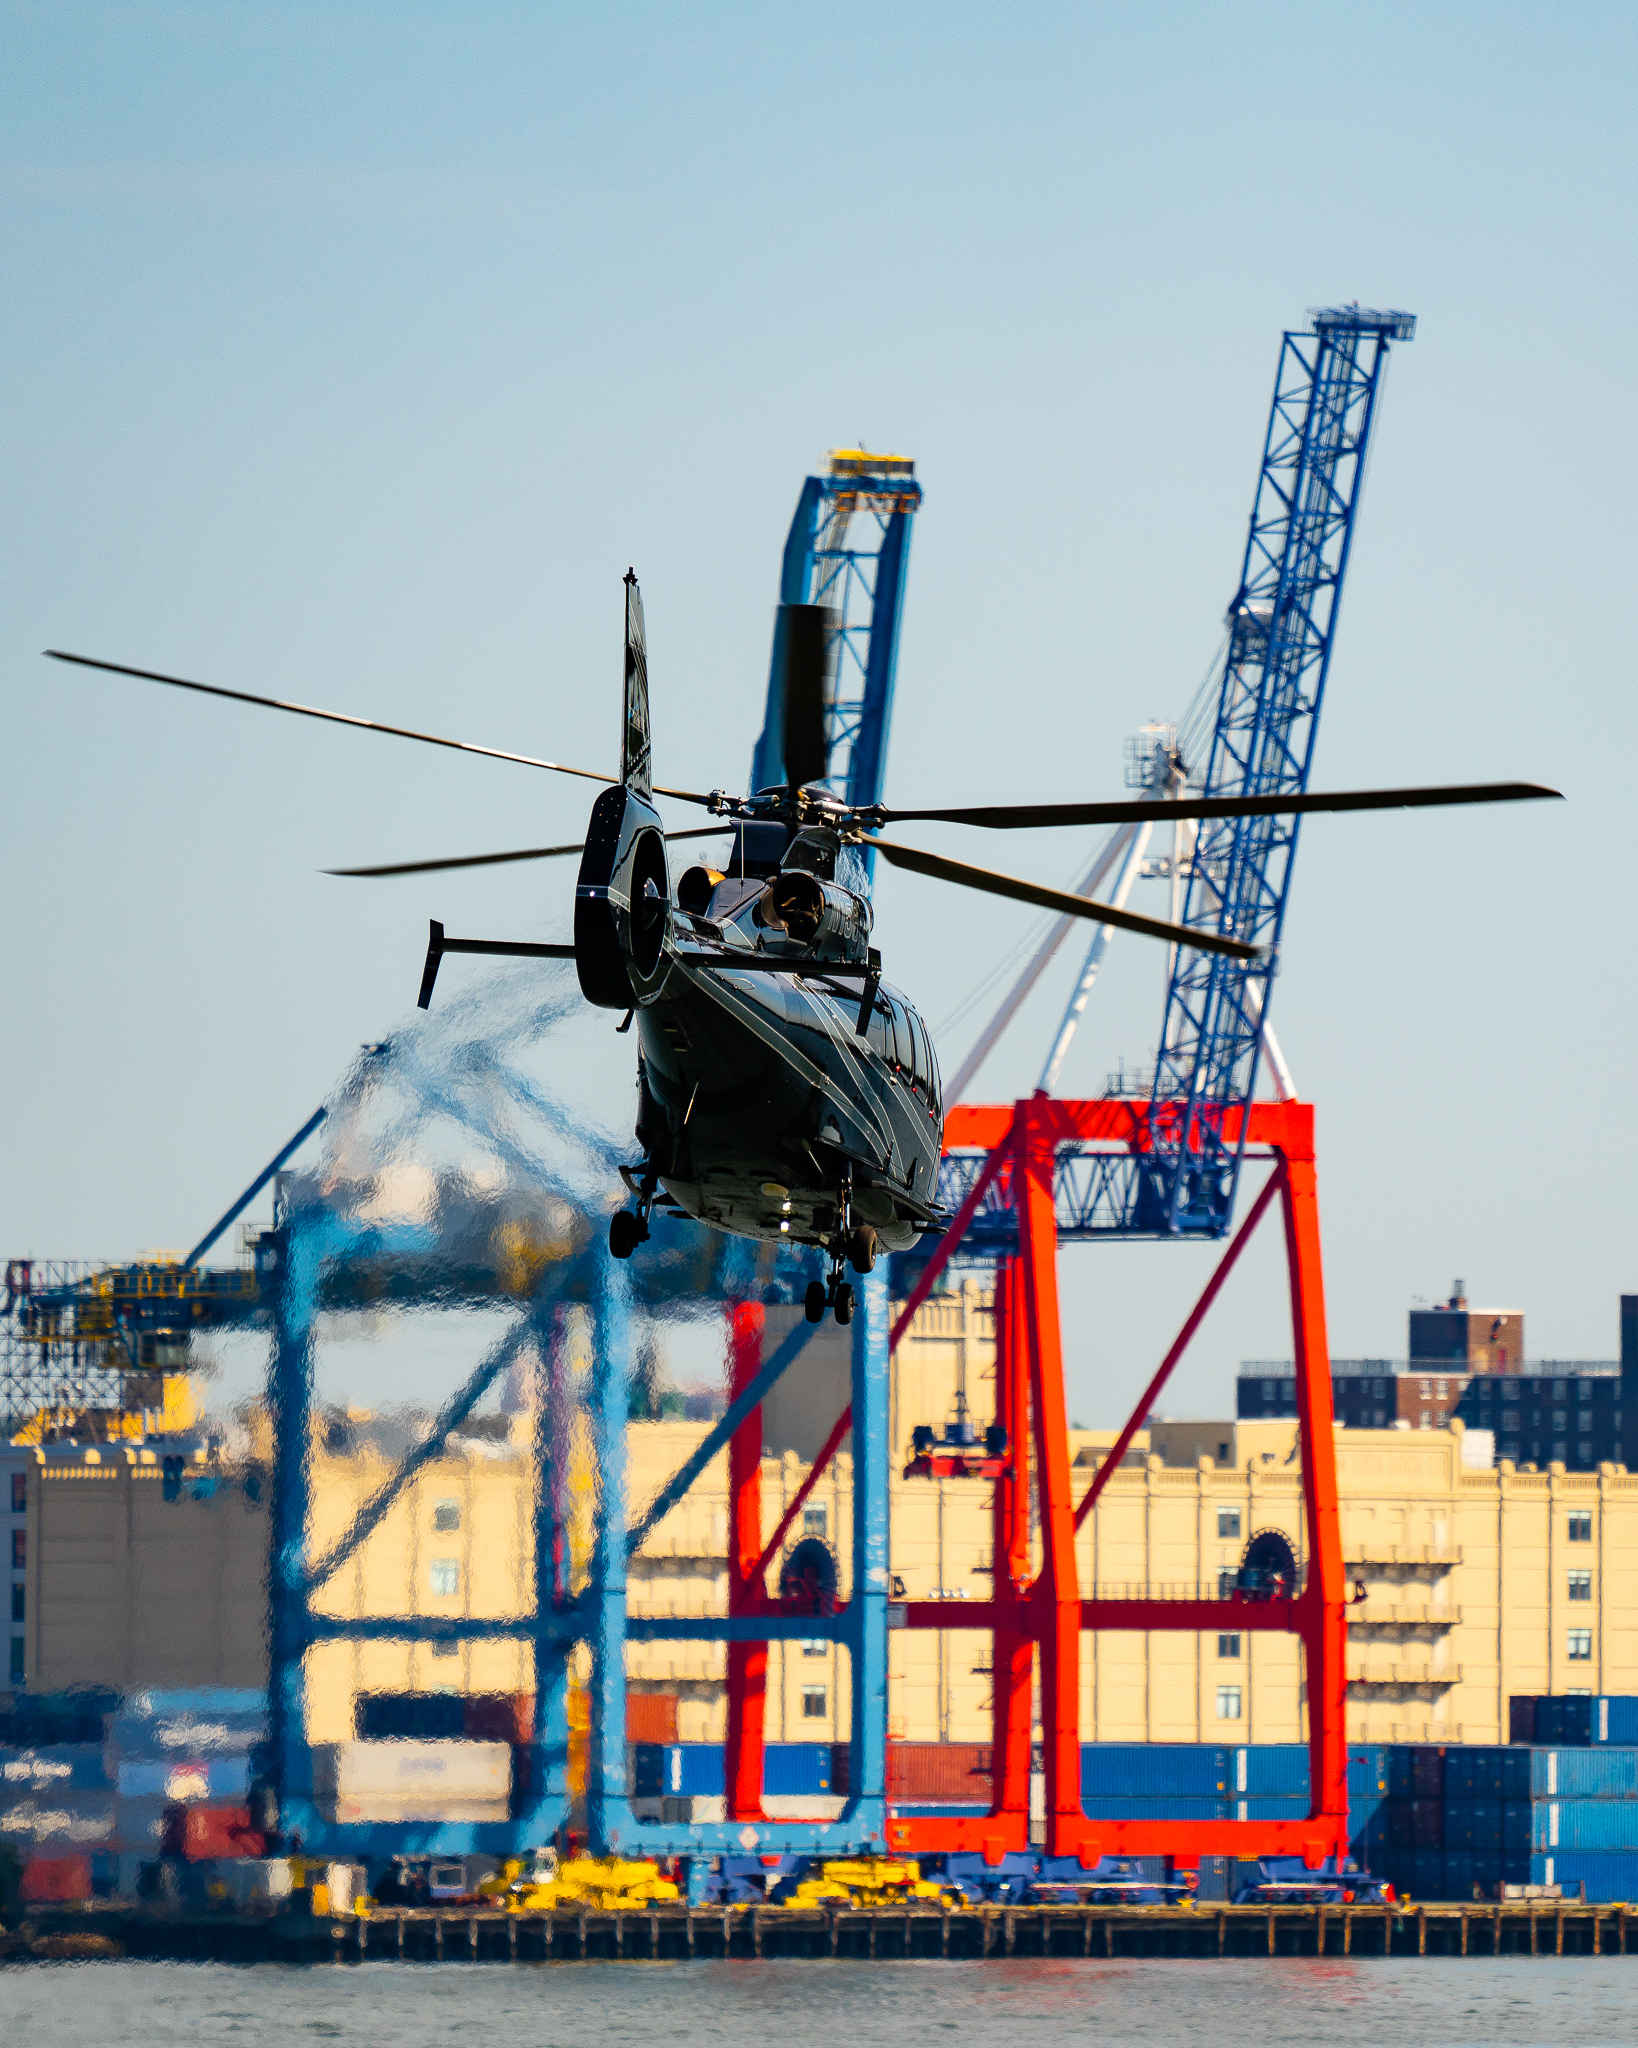 a photo of a black helicopter flying over new york city